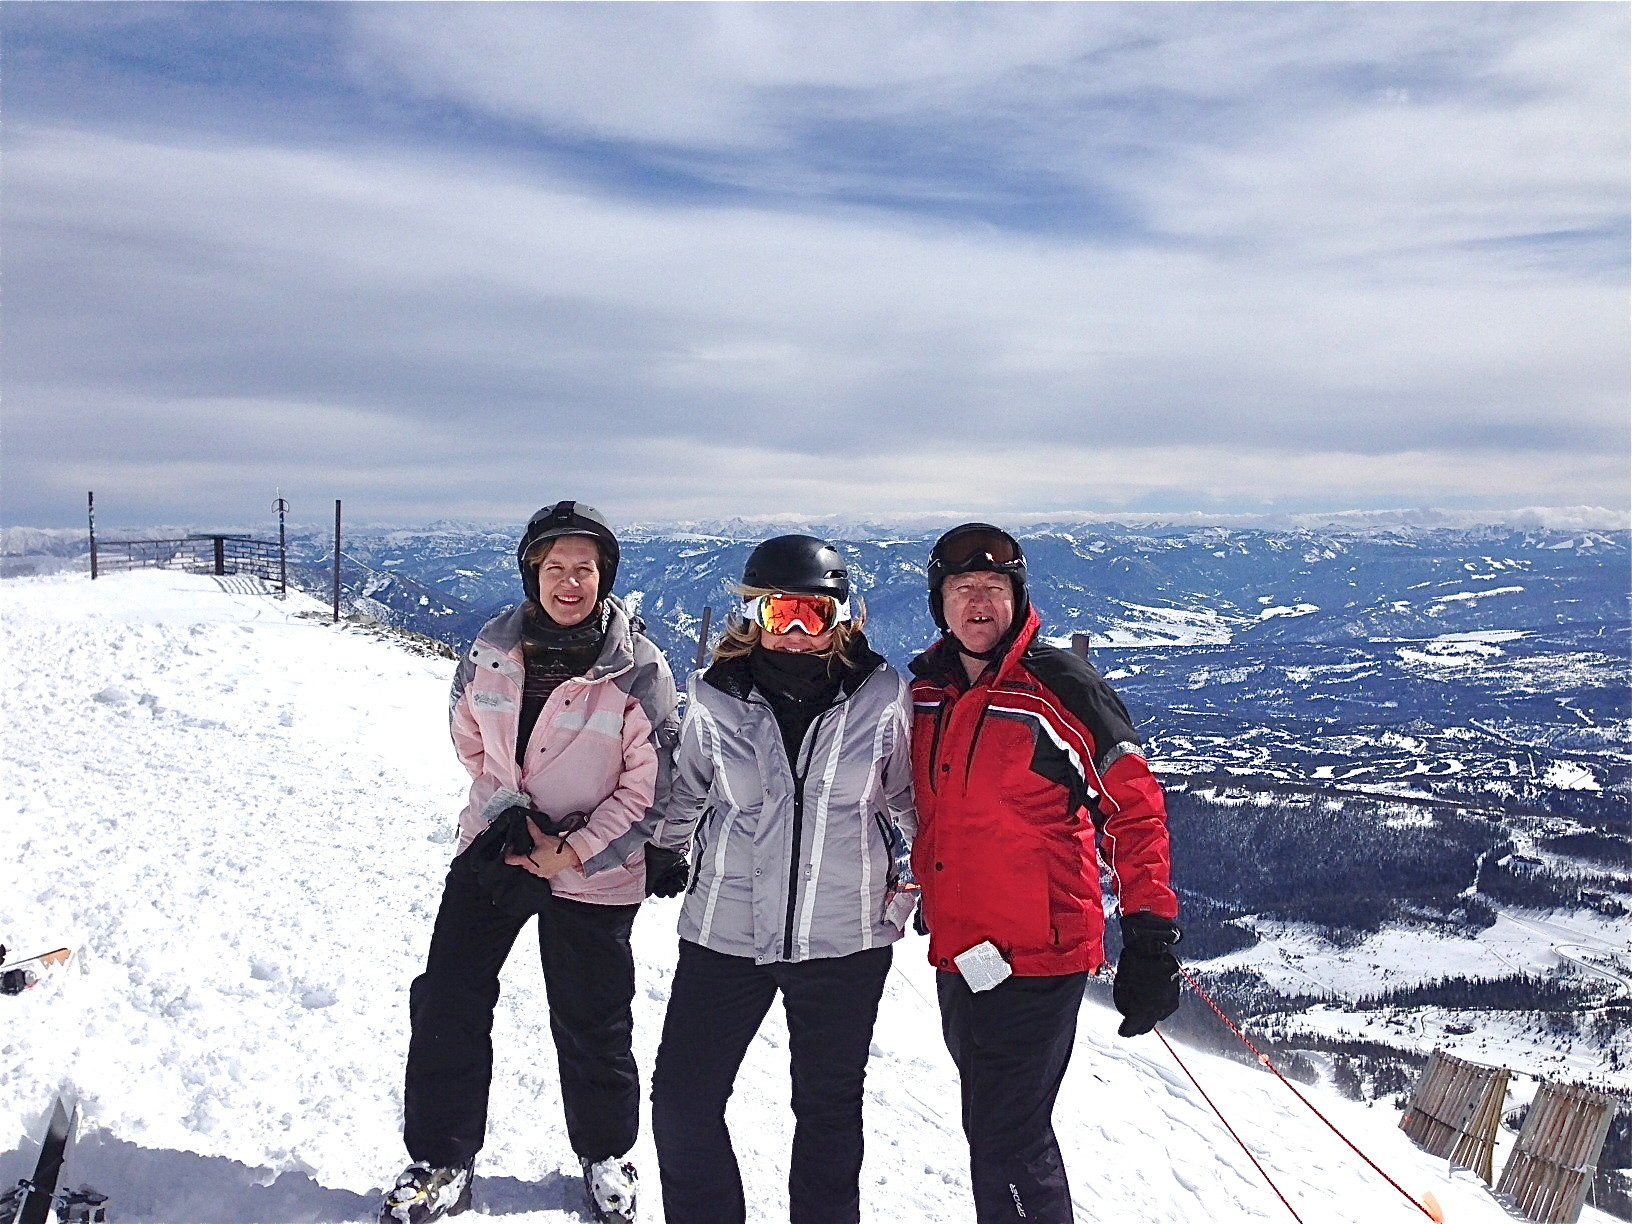 Lorraine, Celeste, & Jack Donohue at the top of Lone Peak